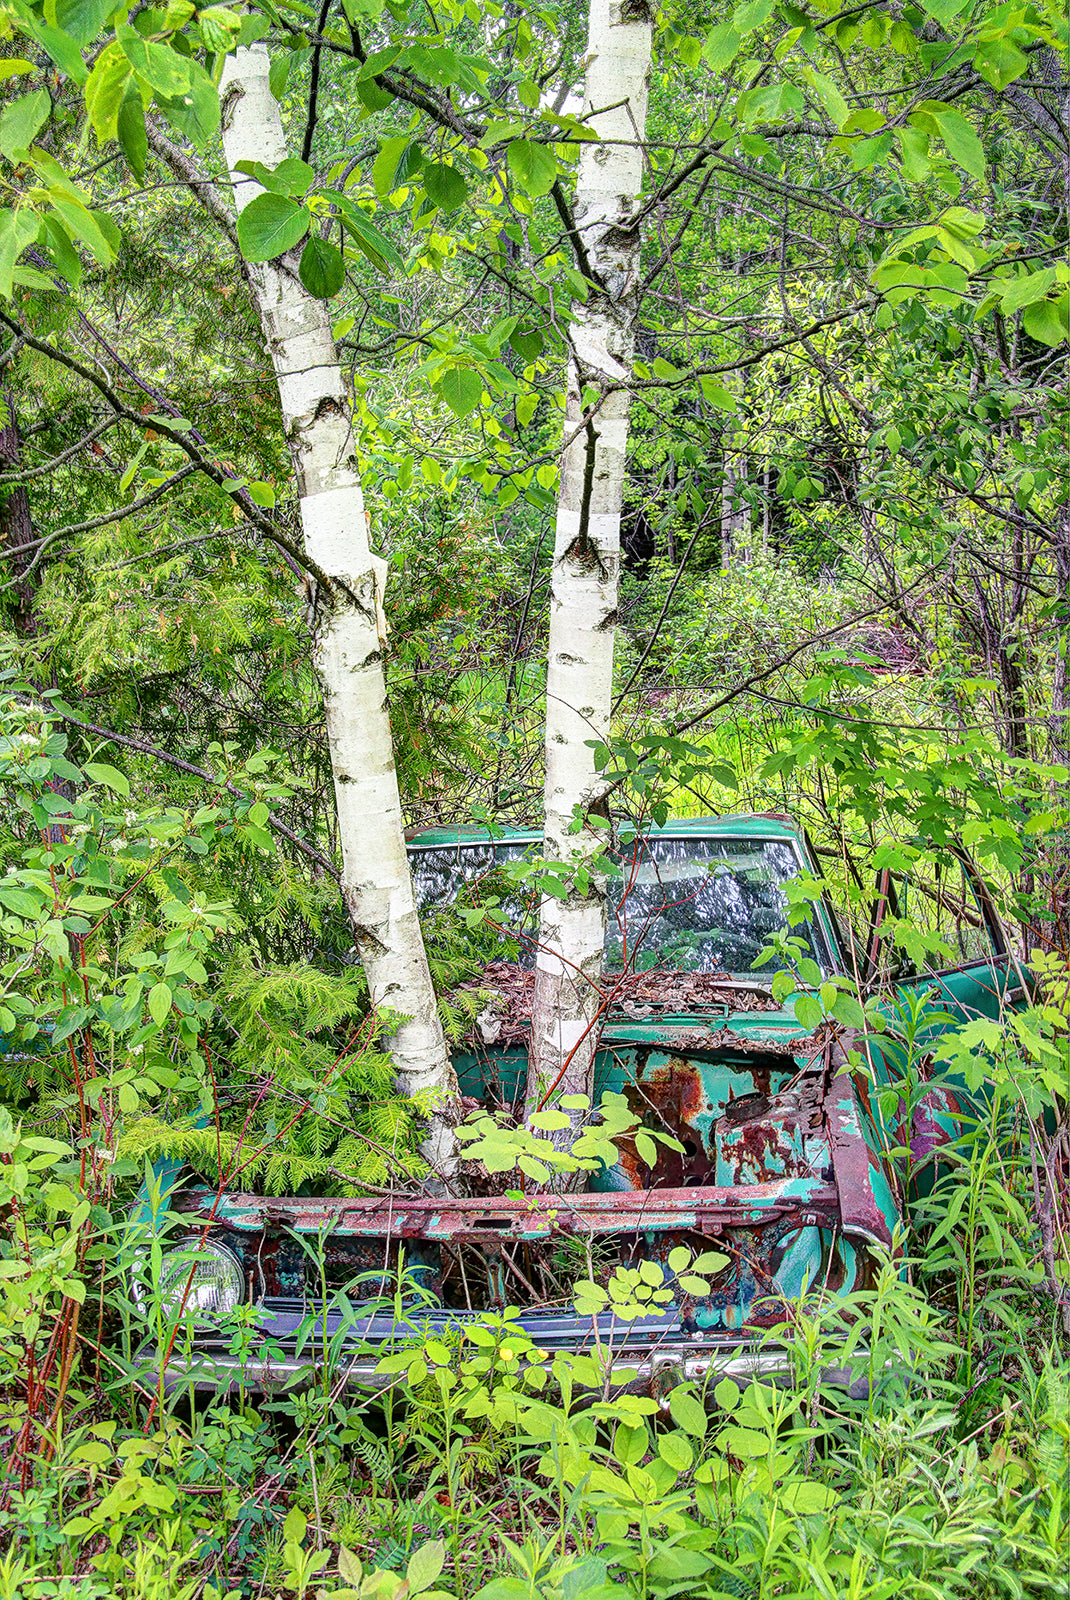 """ Car Sprouts Trees""  - Photo Art - CreativeCollection"